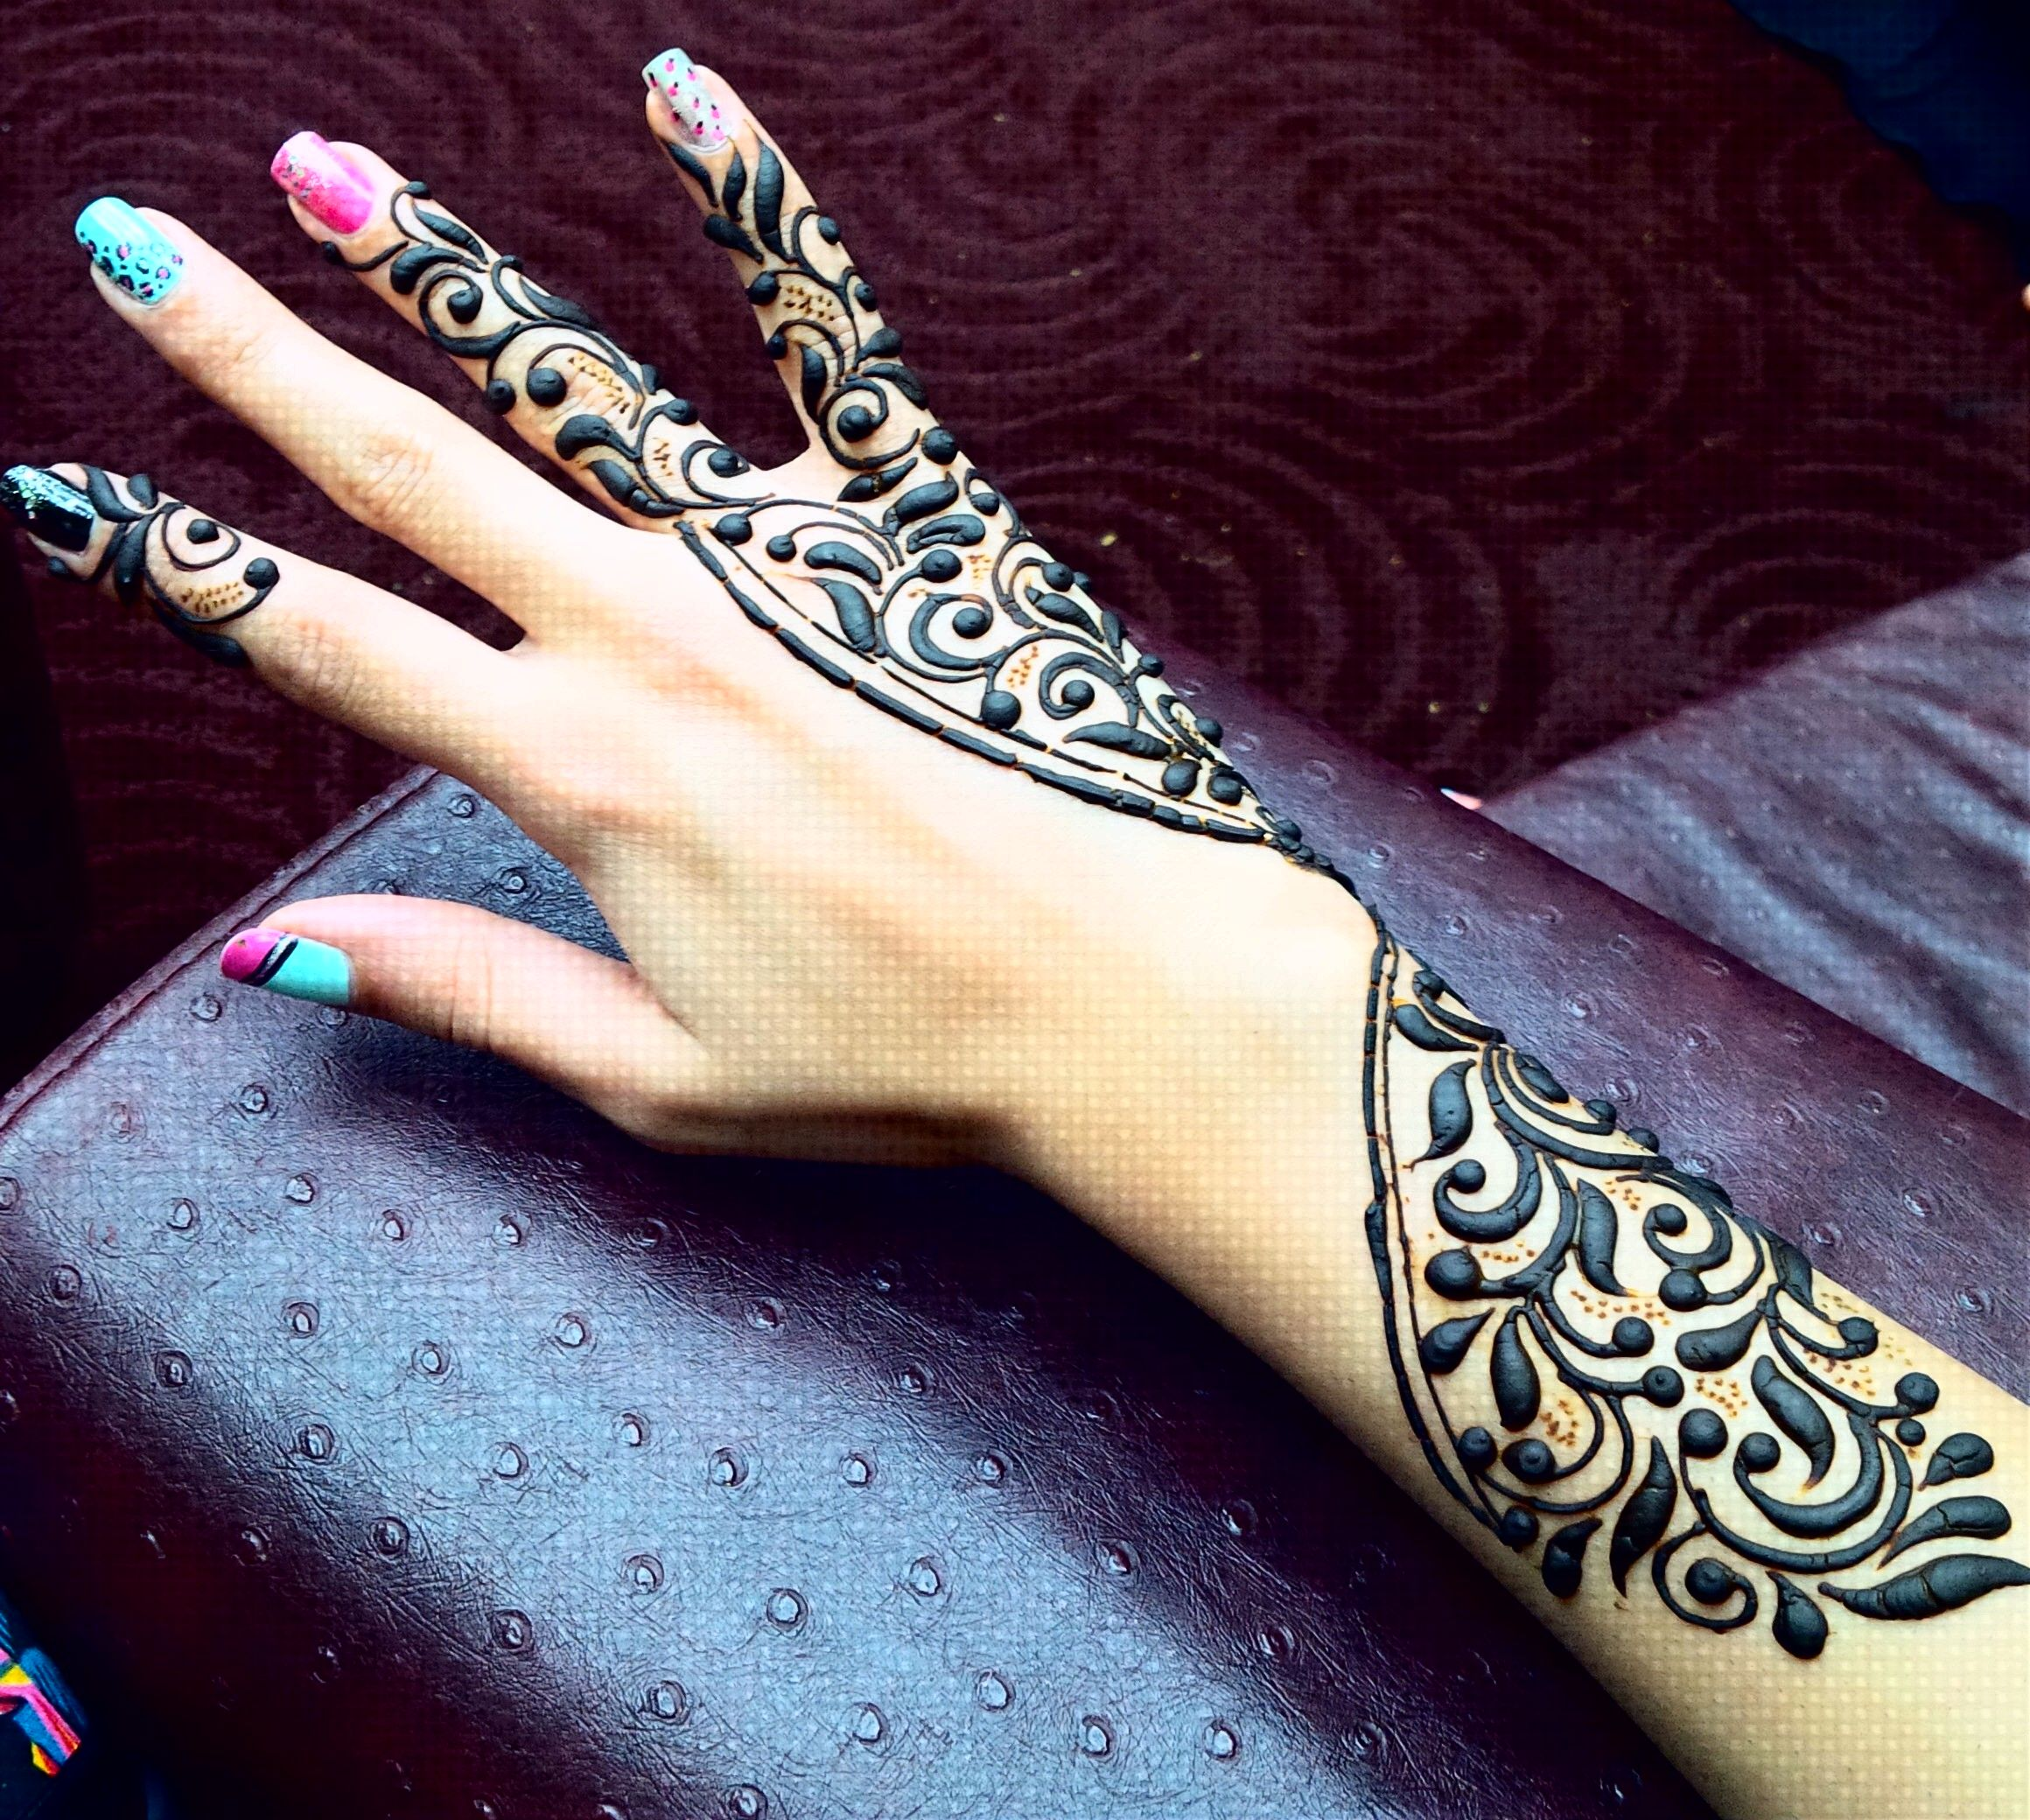 13 Unique Henna Designs Doing The Rounds This Wessing: UniQue Henna DesiGn!